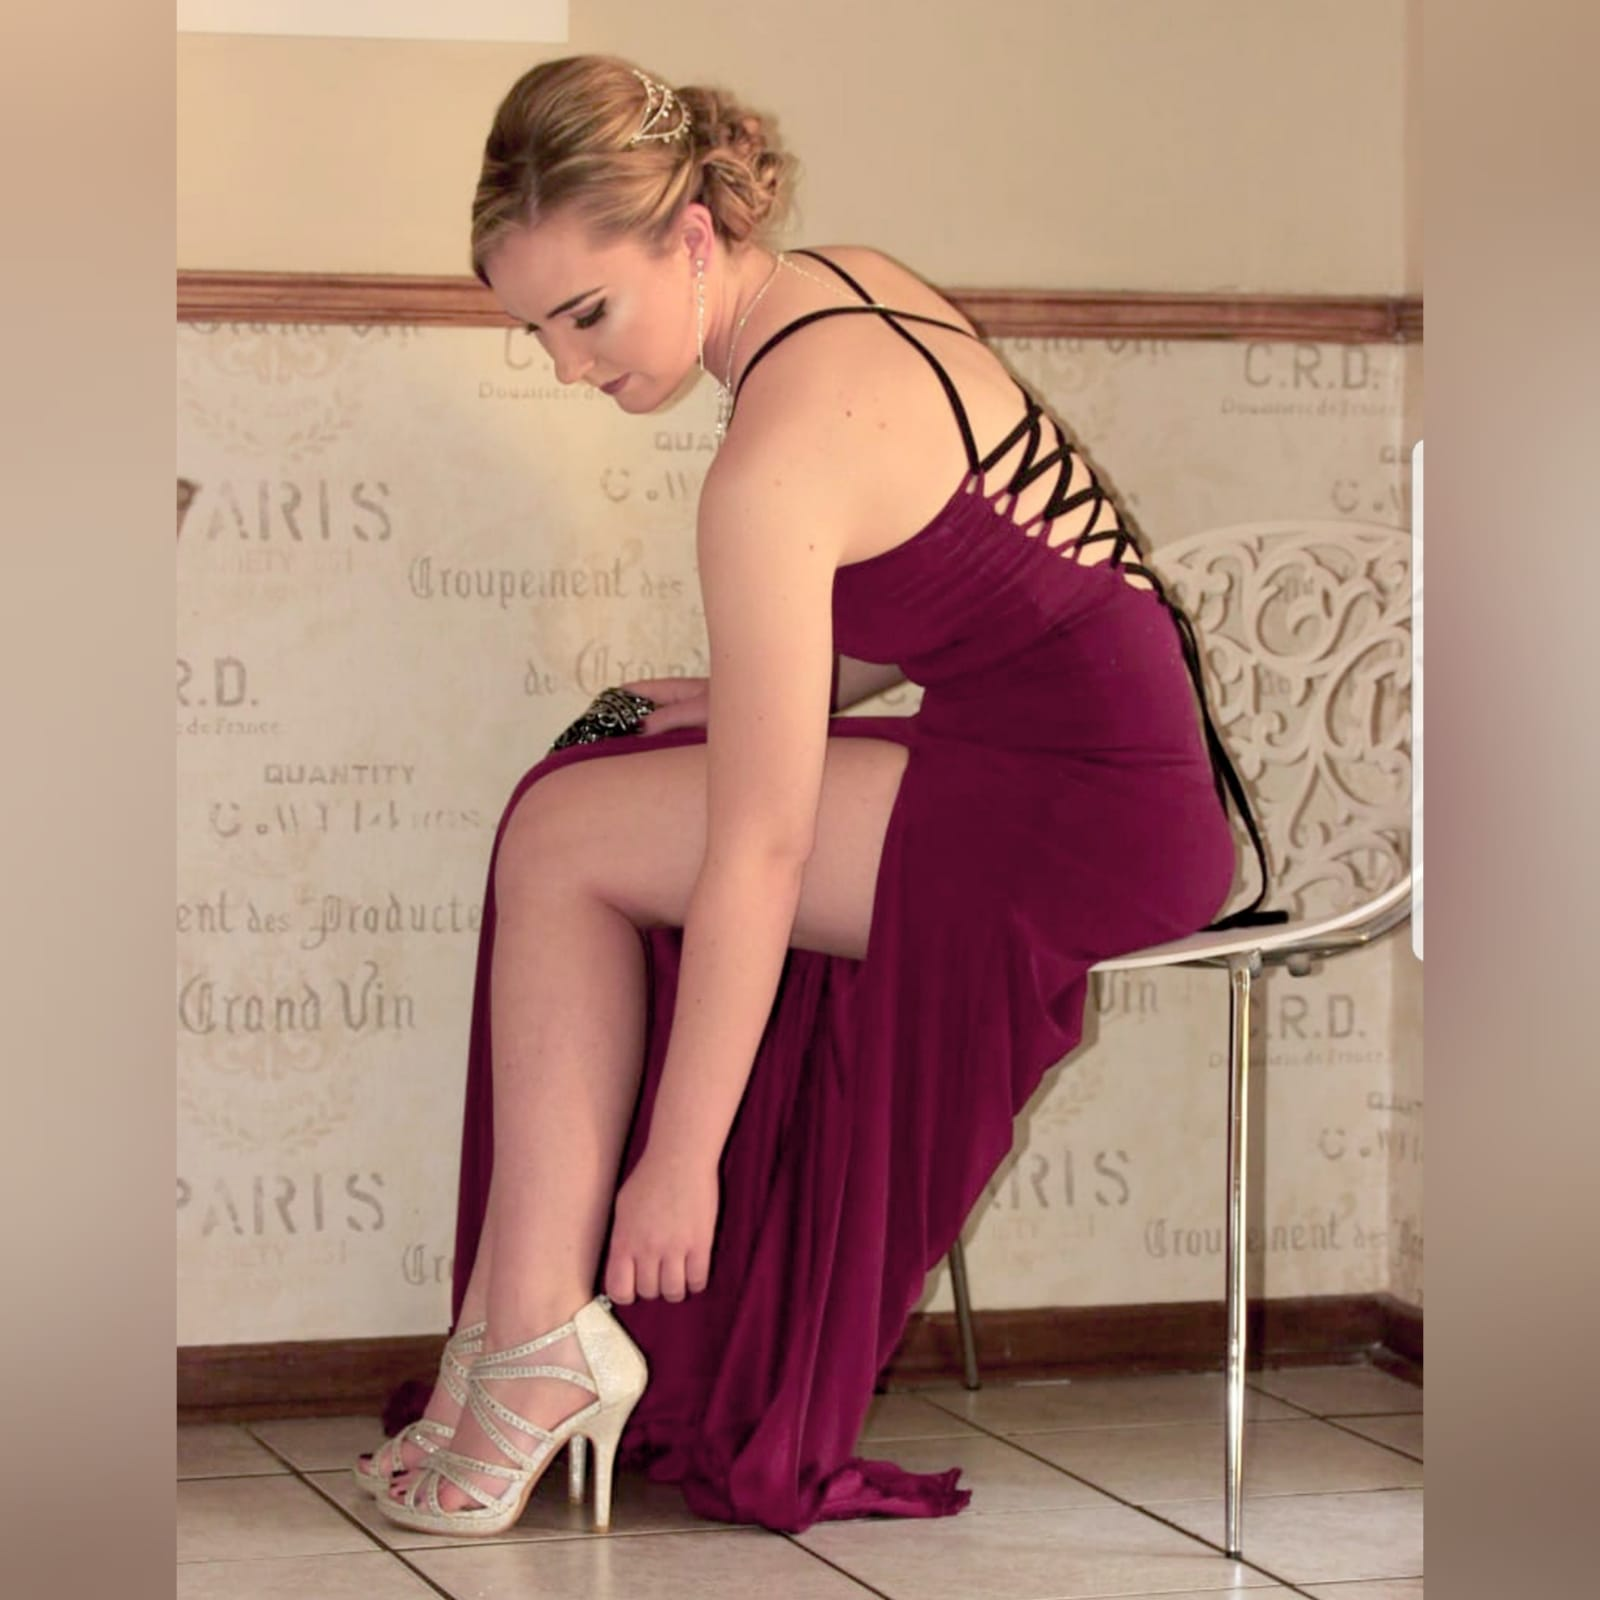 Burgundy, black and silver long sexy matric farewell dress 1 burgundy, black and silver long sexy matric farewell dress, open back with lace up detail, sheer lace train, with a slit and a v neckline.